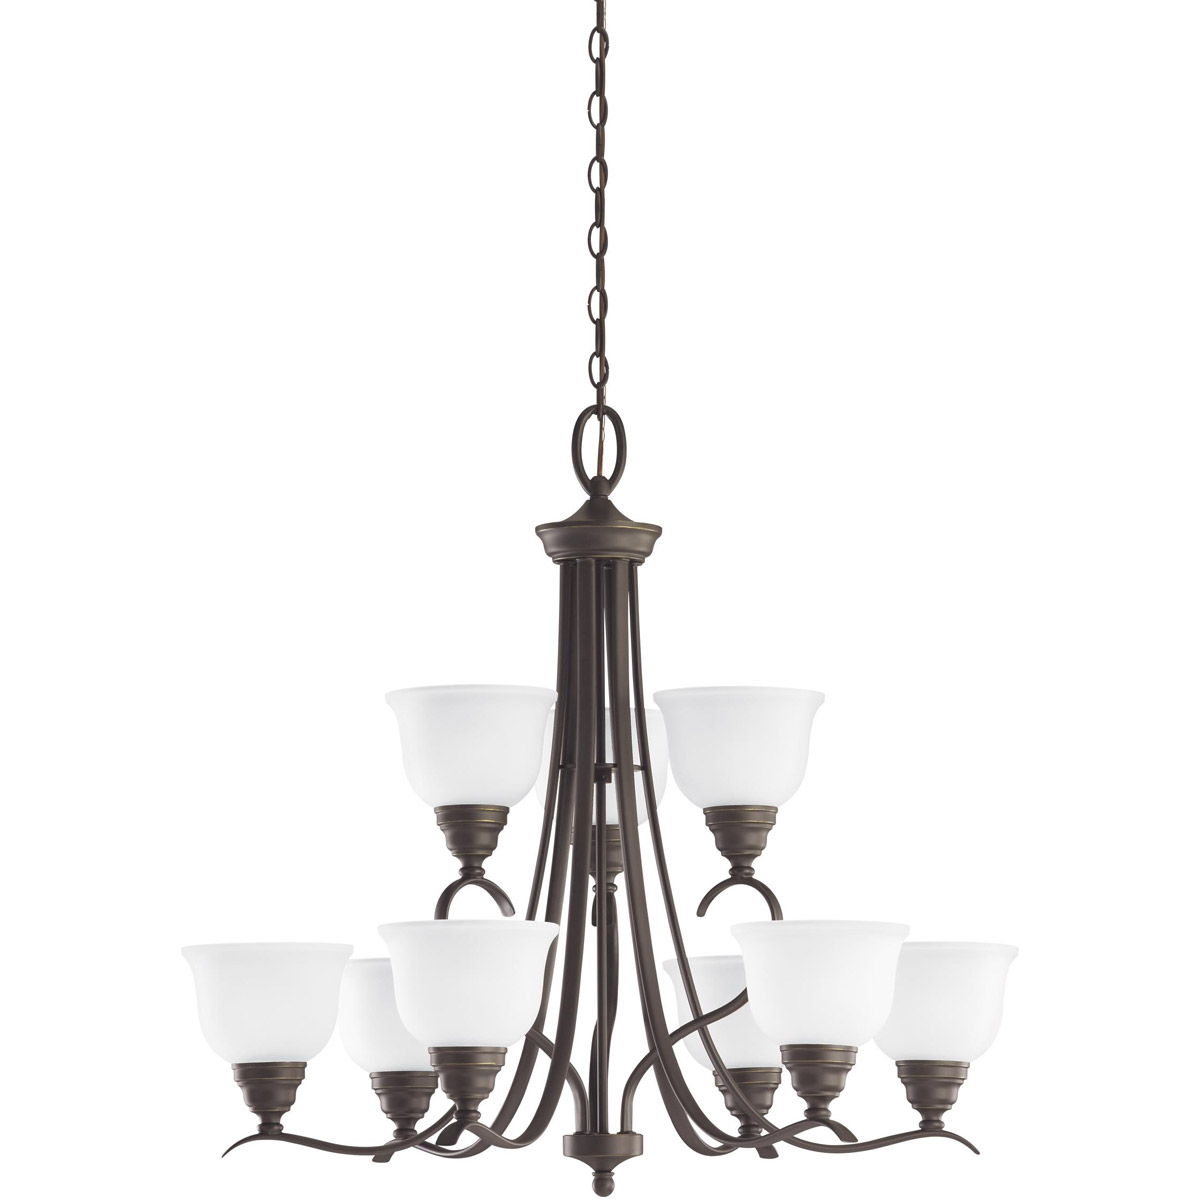 Sea Gull Lighting Wheaton 9 Light Chandelier in Heirloom Bronze 31627-782